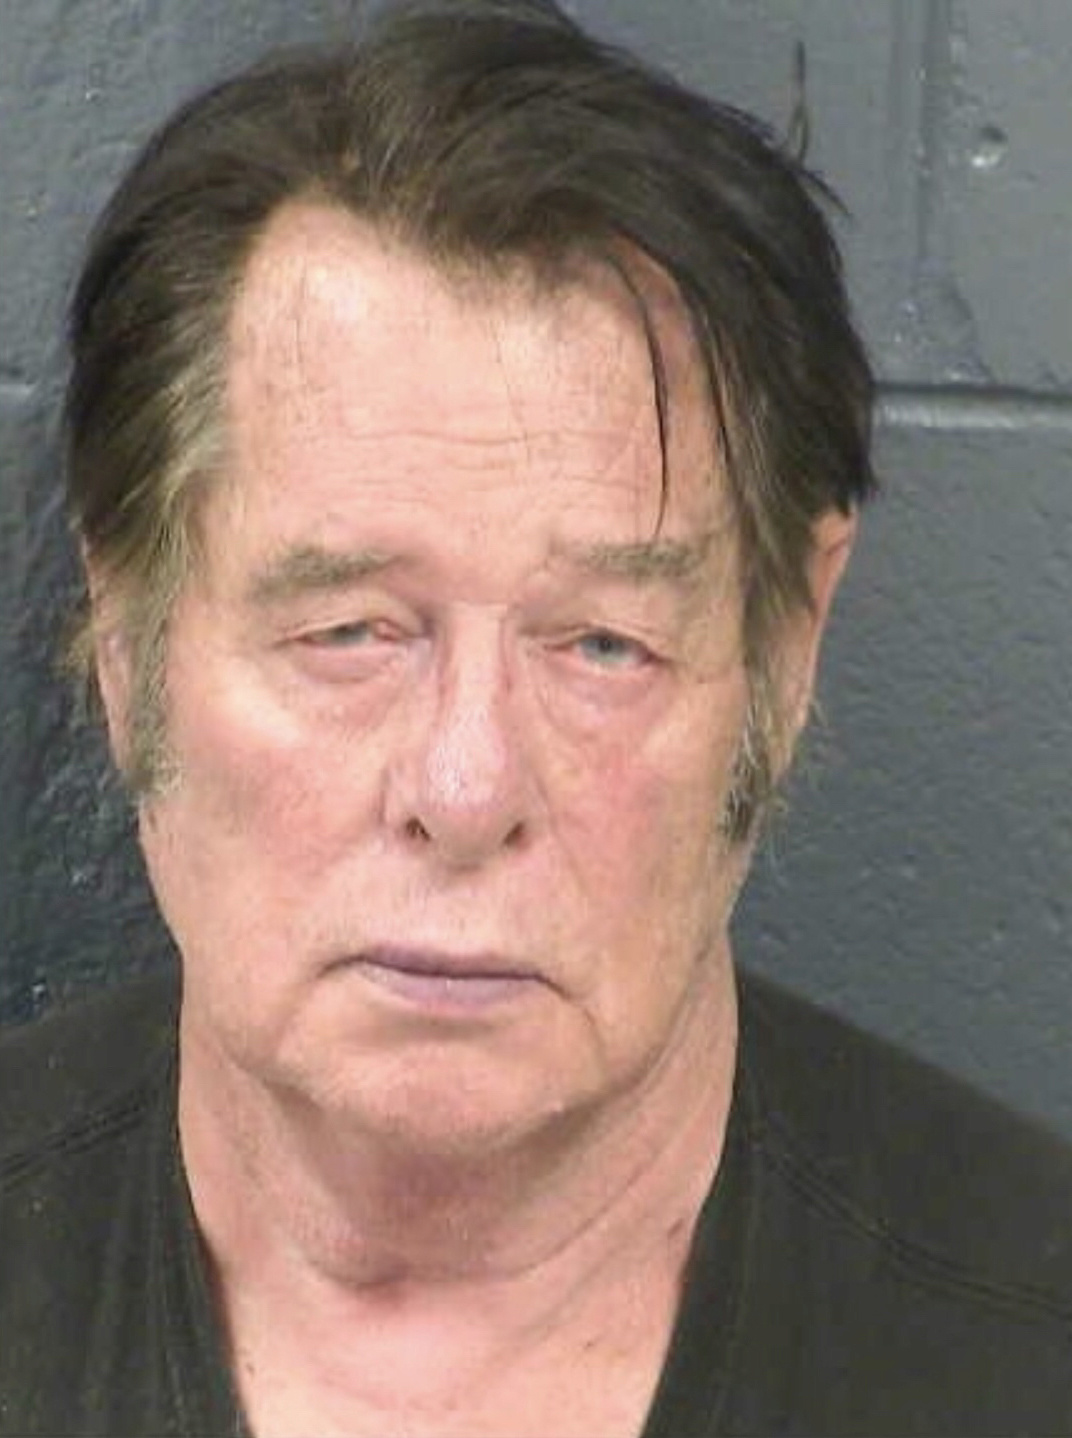 Larry Mitchell Hopkins appears in a police booking photo taken at the Dona Ana County Detention Center in Las Cruces, New Mexico, U.S., April 20, 2019. Dona Ana County Detention Center/Handout via REUTERS